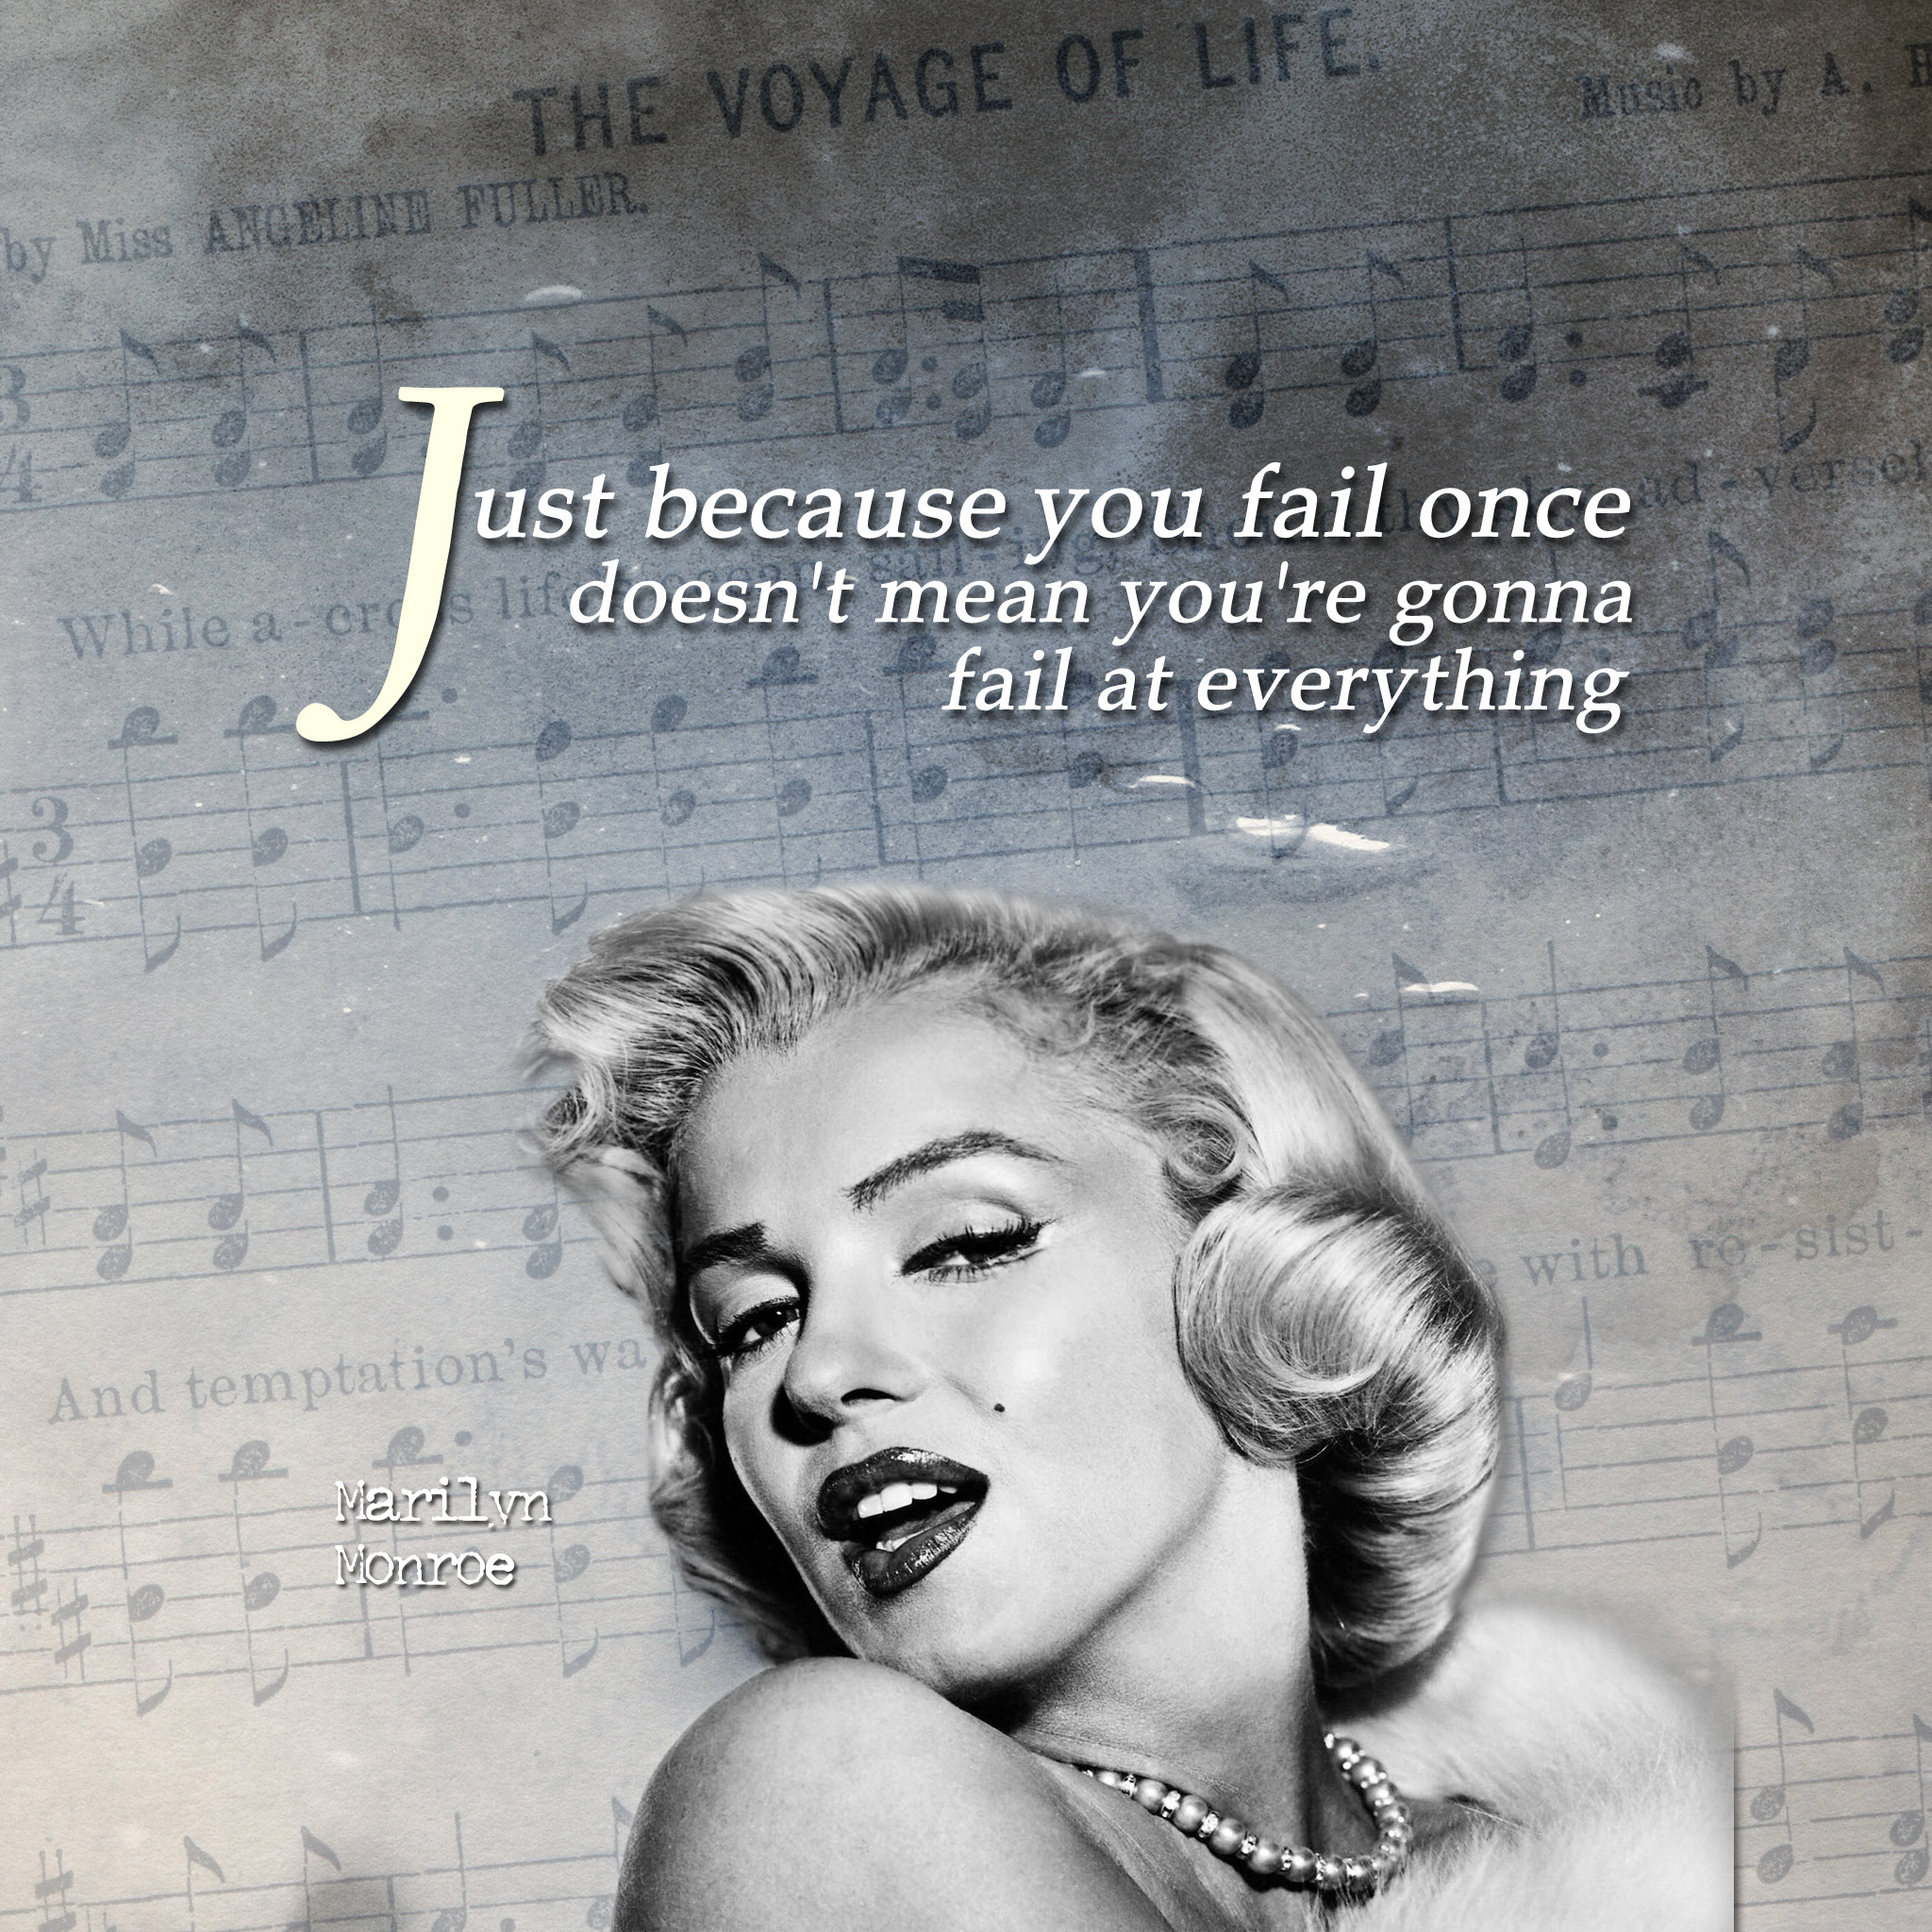 Marilyn Monroe Photos And Quotes: Marilyn Monroe Quotes Inspirational. QuotesGram